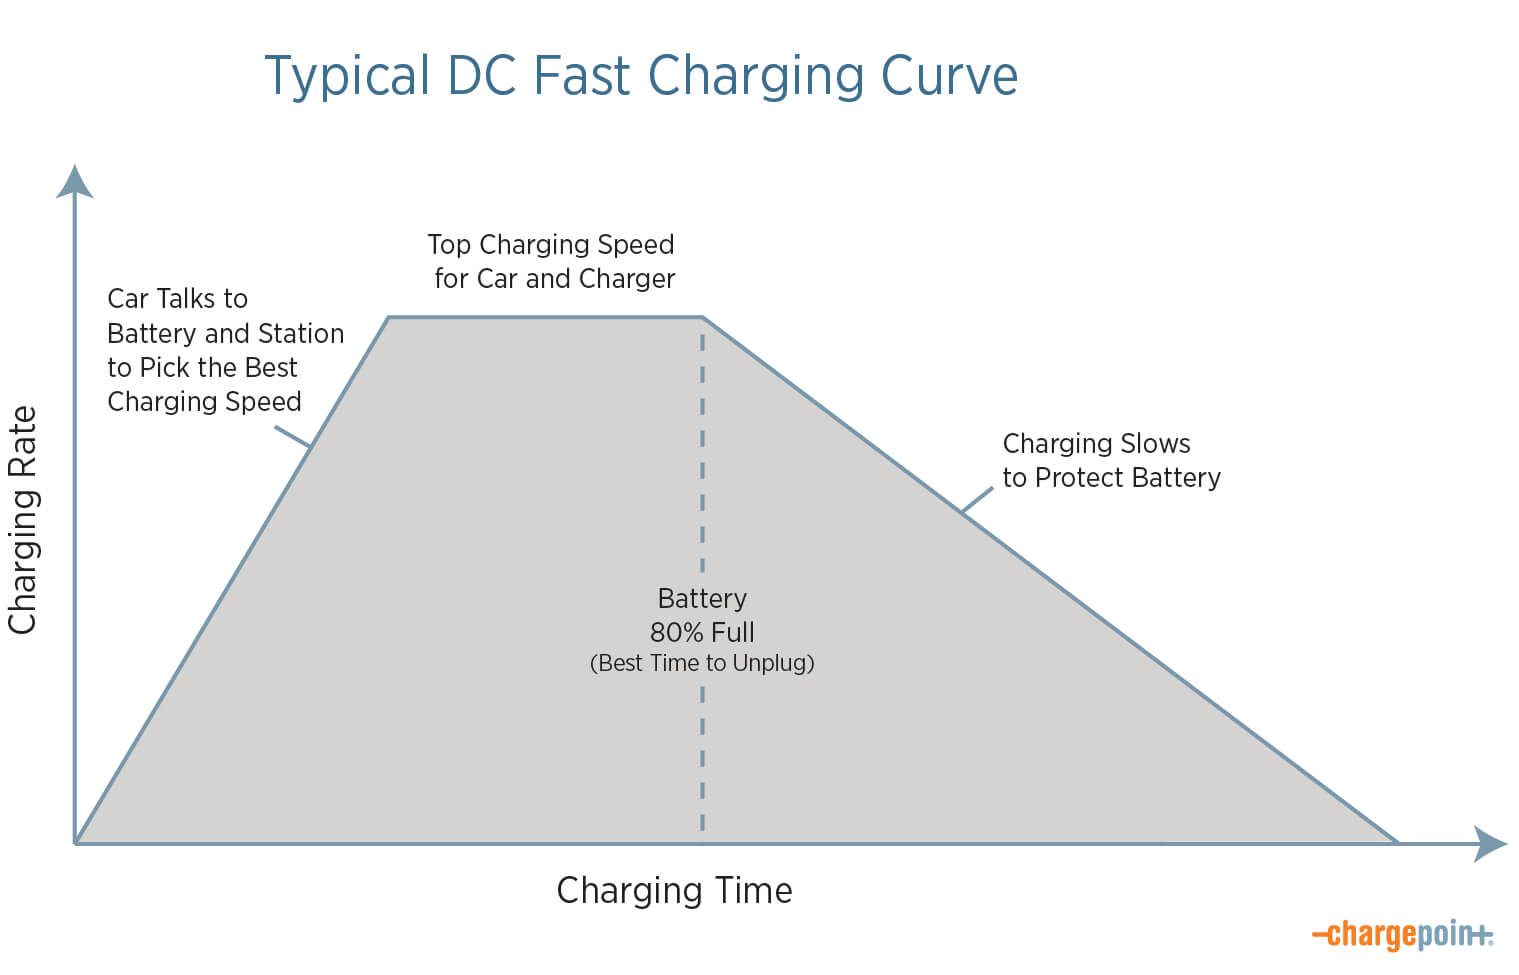 Typical DC Fast Charging Curve